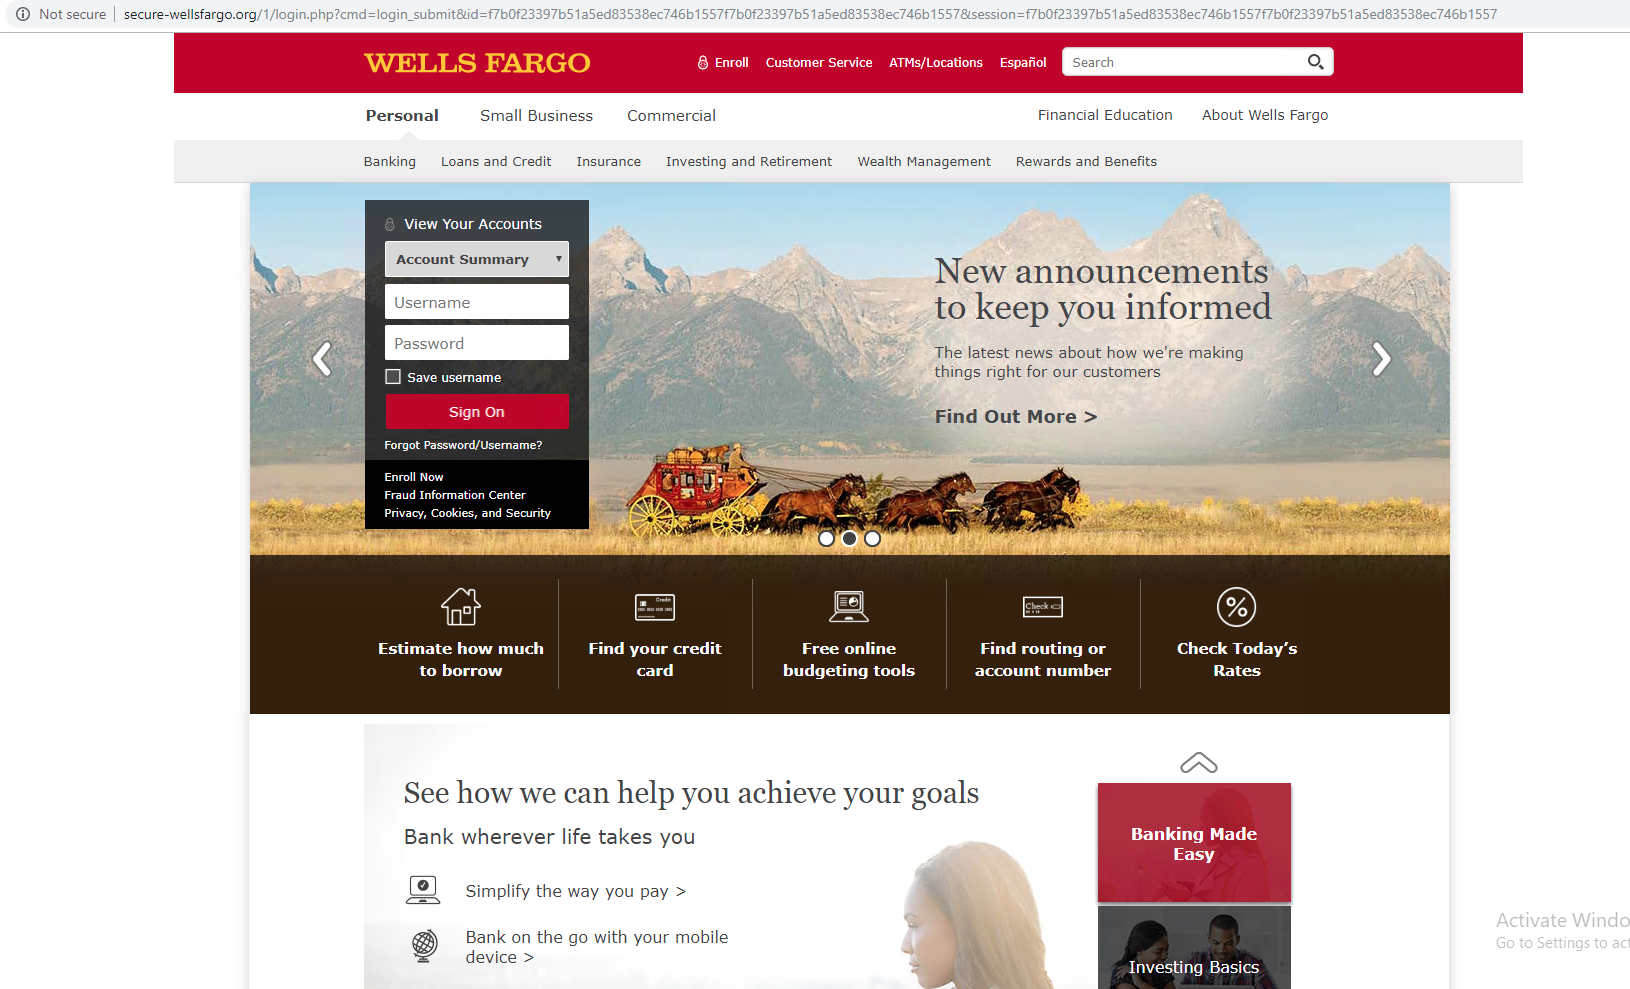 This screenshot shows a combosquatting domain's attempt to mimic Wells Fargo's official site. This illustrates one example of cybersquatting.